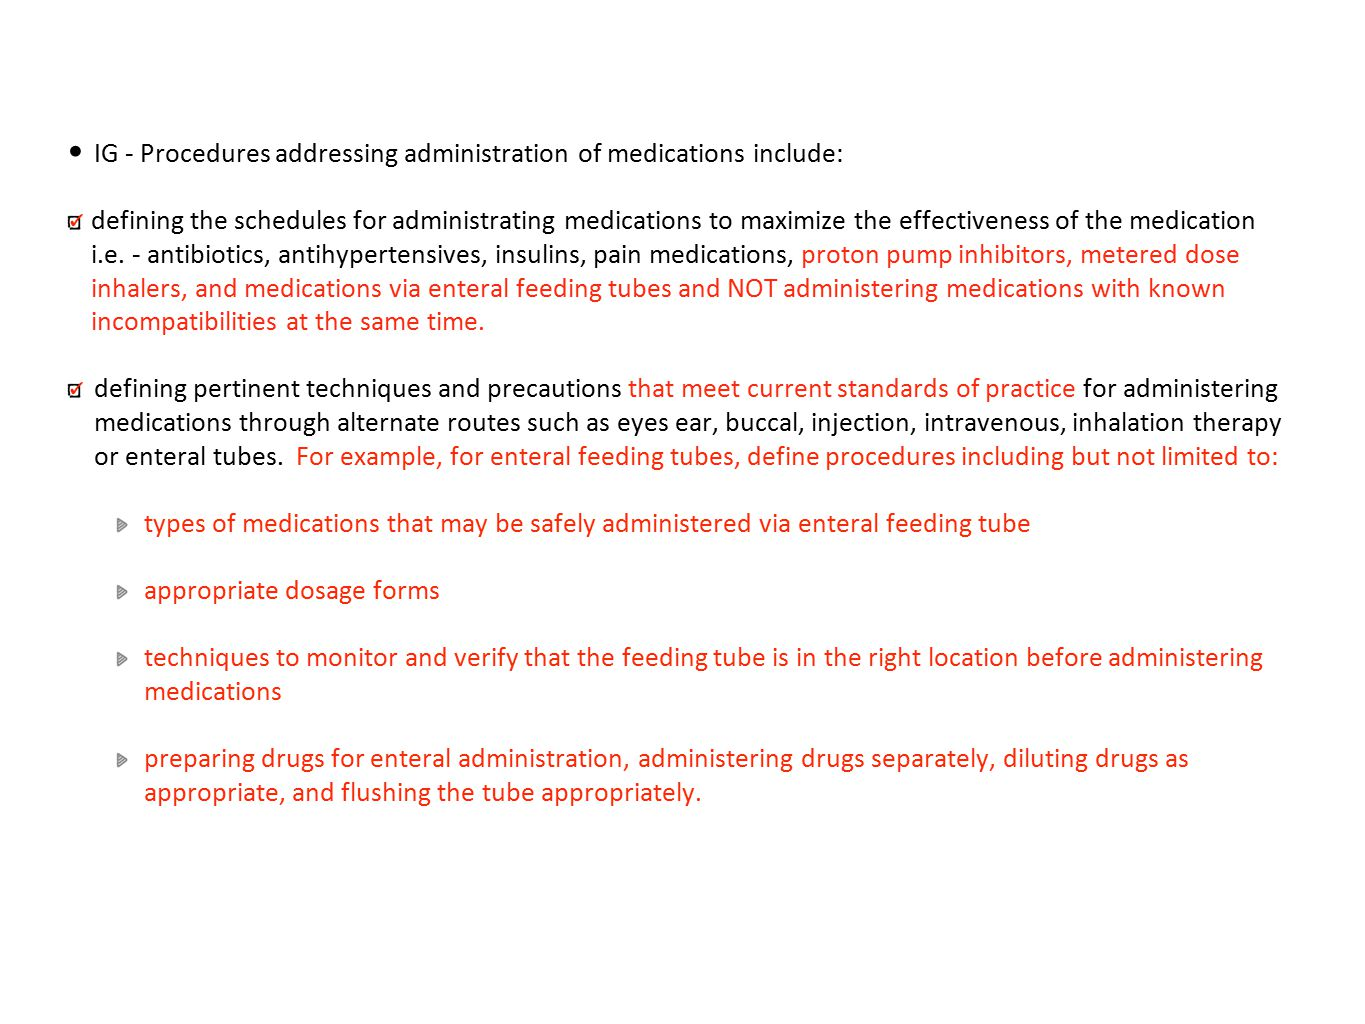 IG - Procedures addressing administration of medications include: